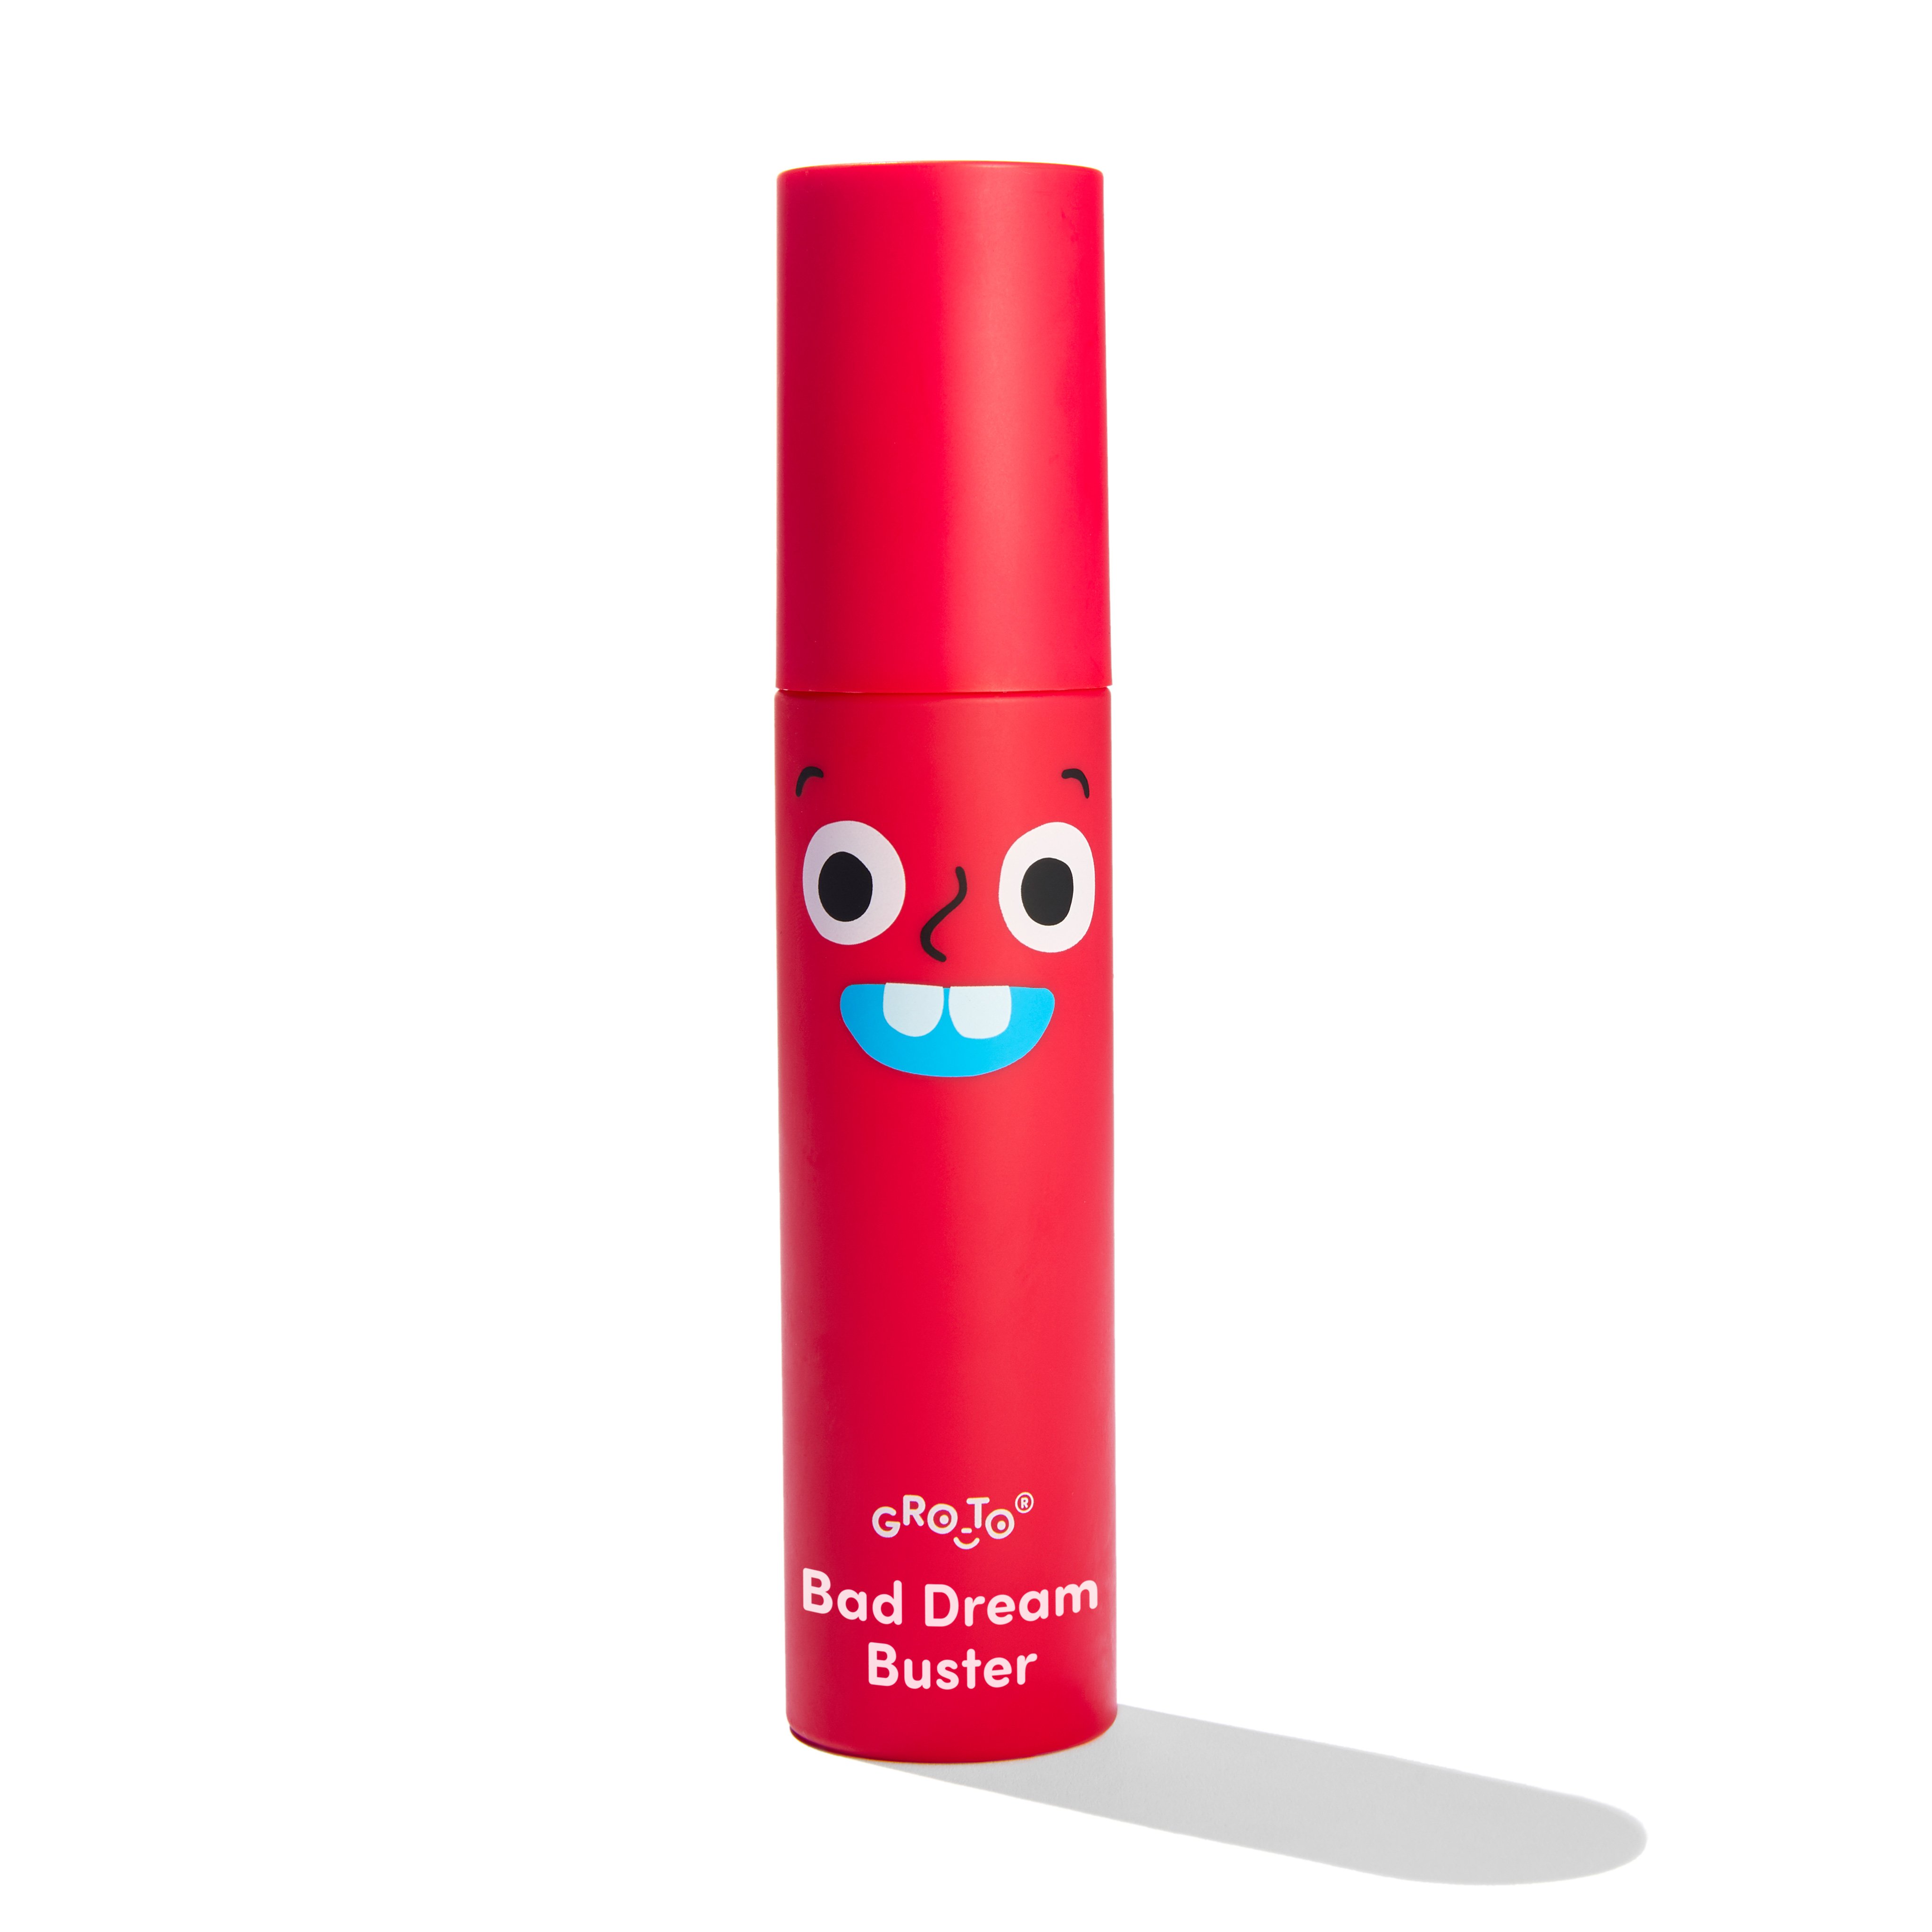 Gro-To Skincare Bad Dream Buster Claming Room Spray